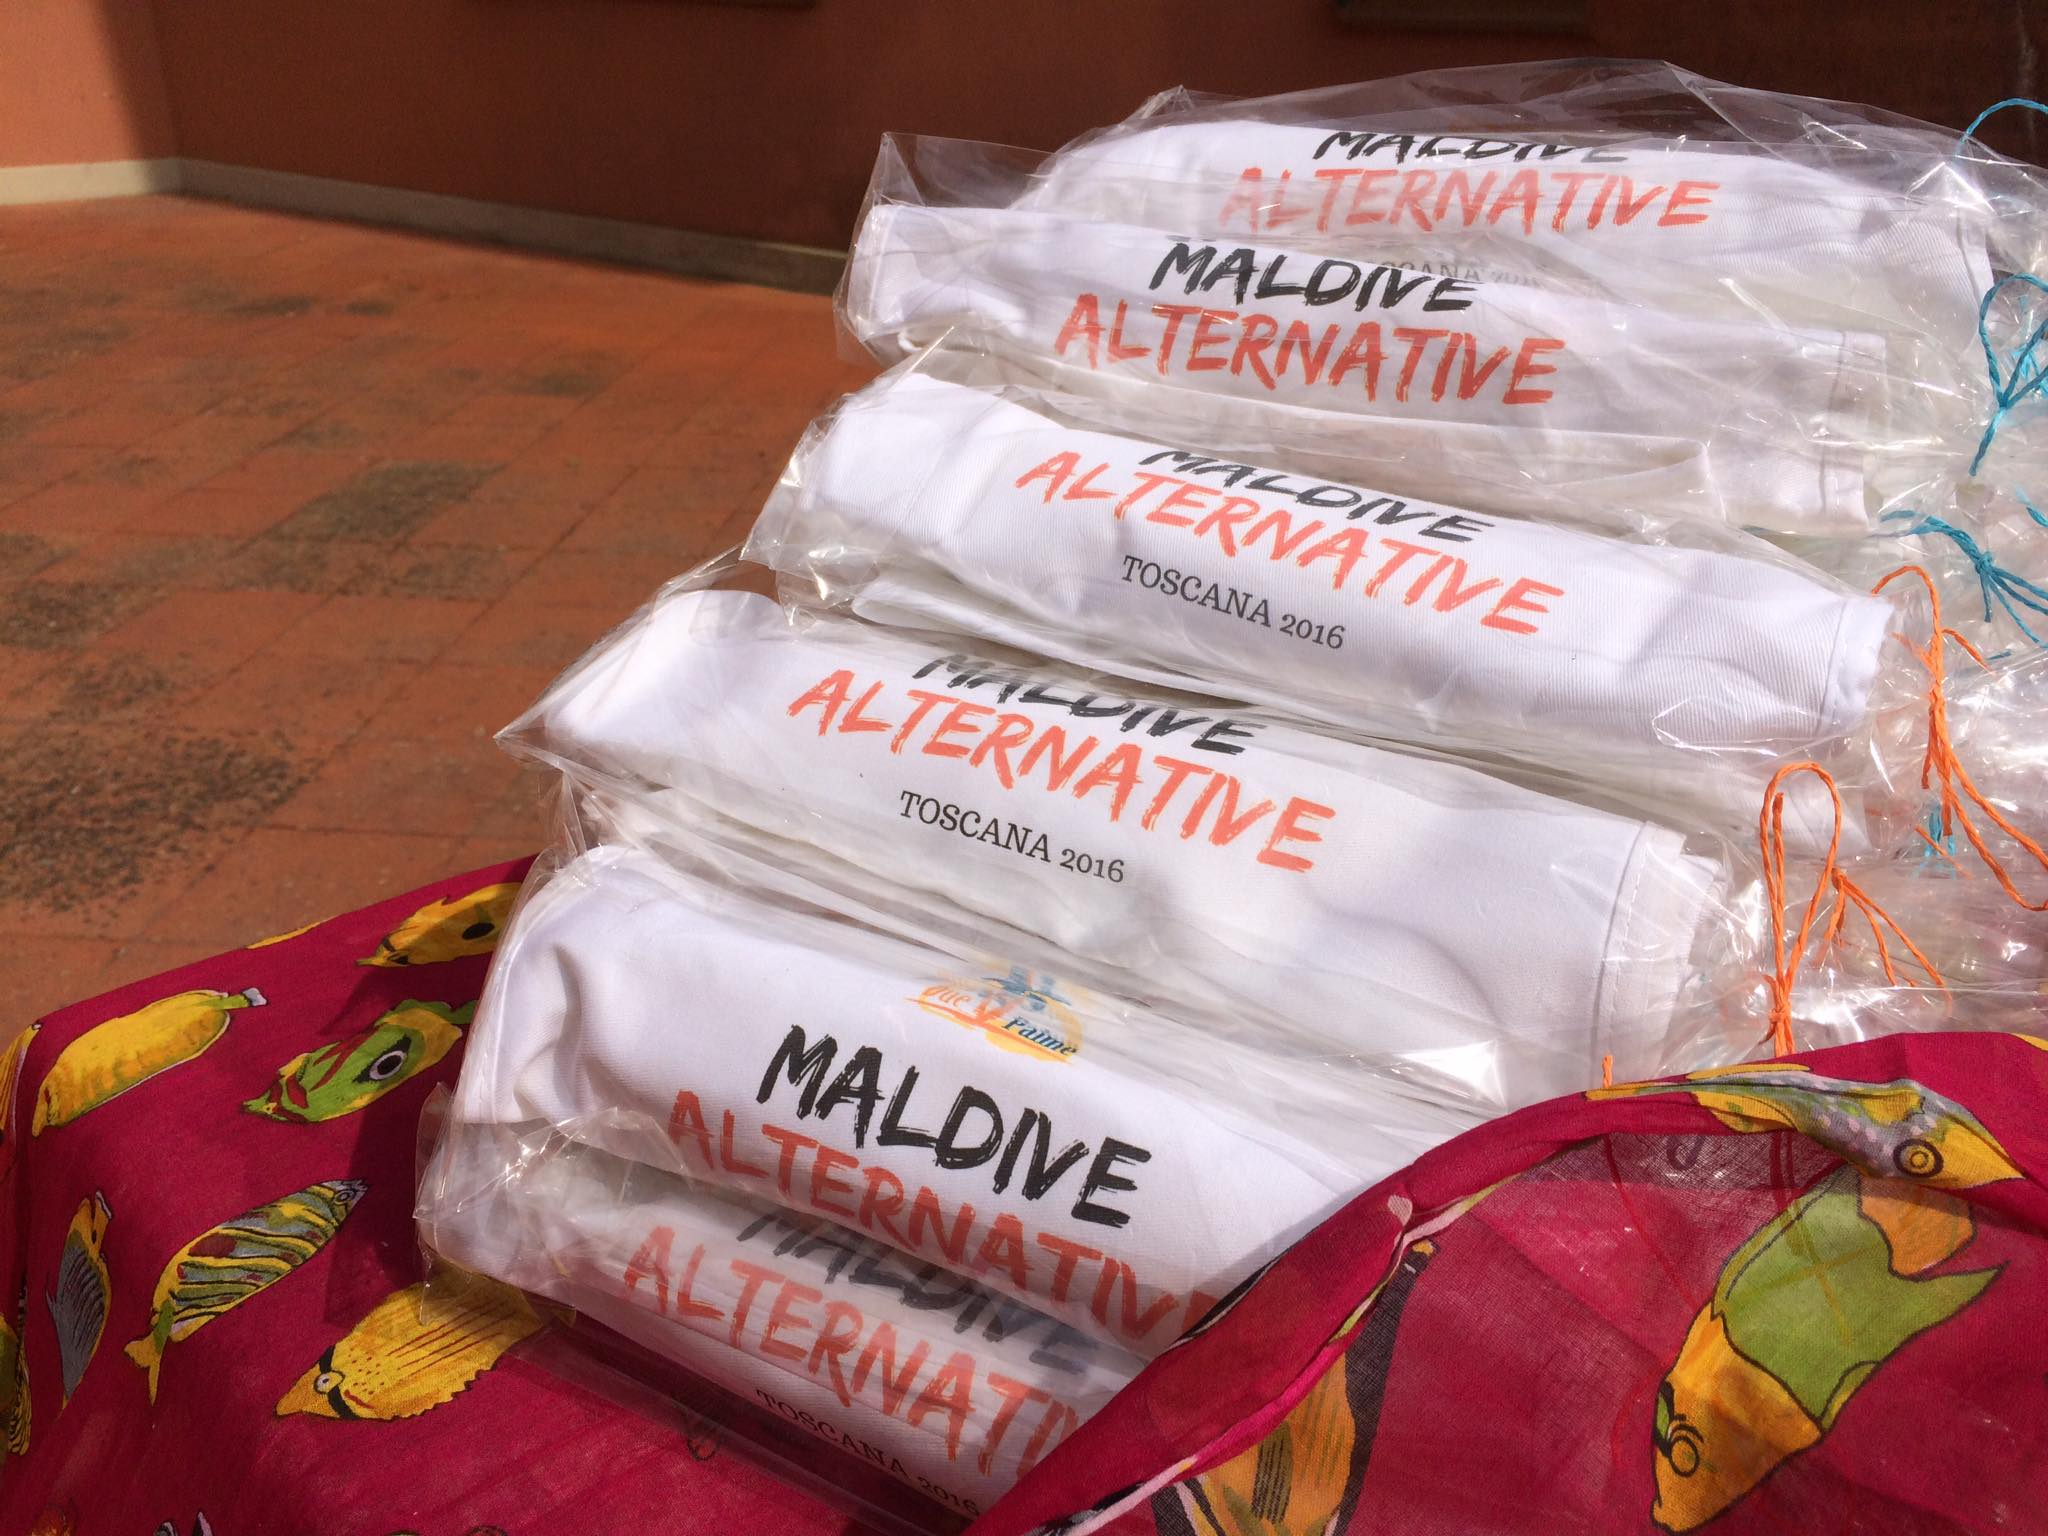 L'evento di Maldive Alternative in Toscana